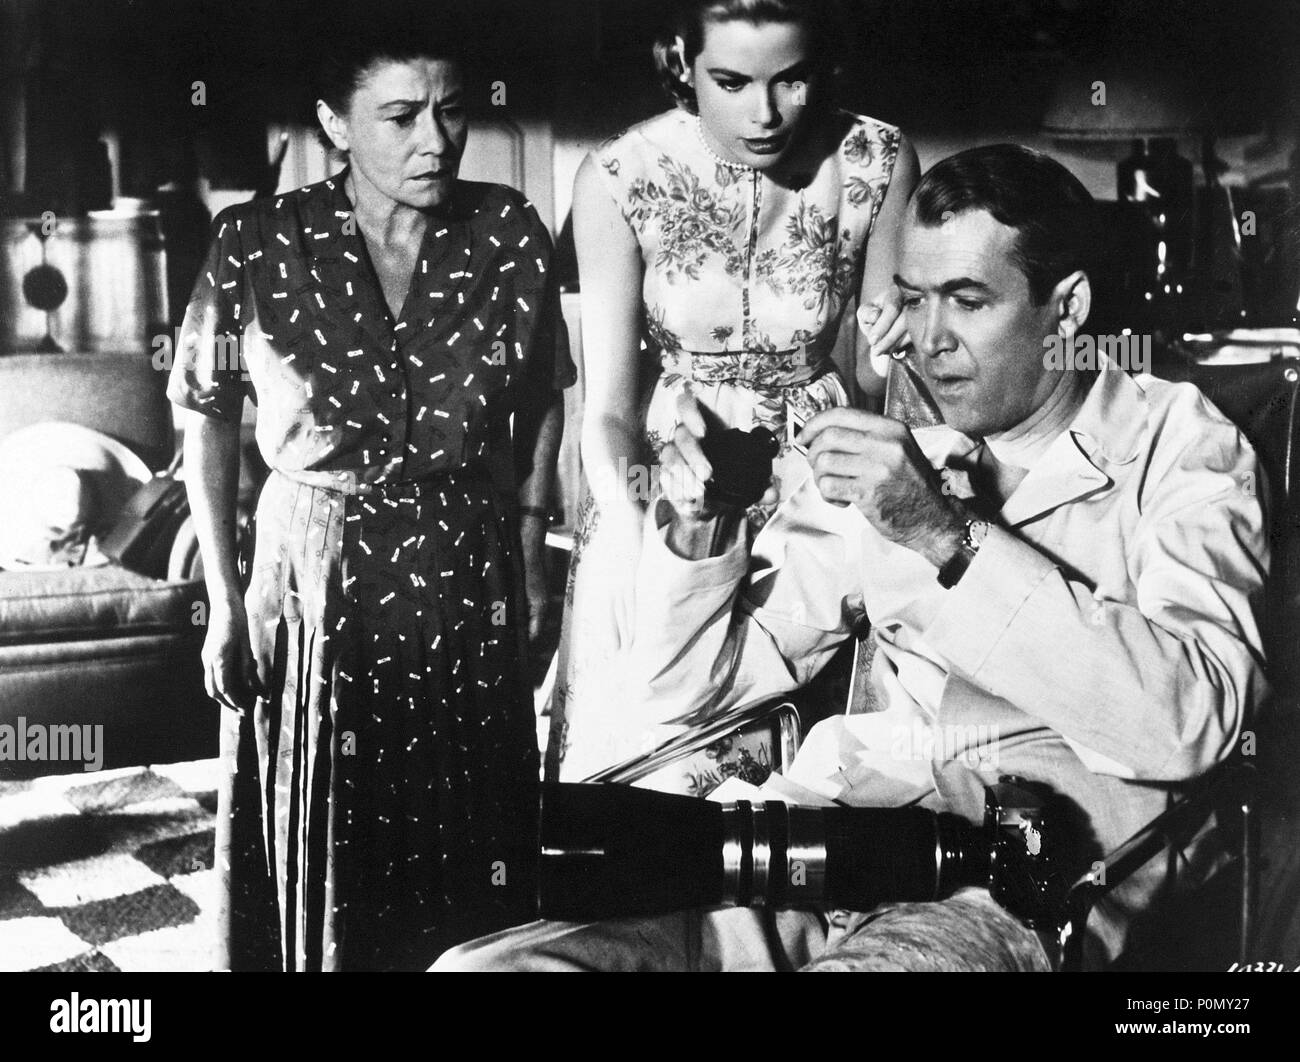 Original Film Title: REAR WINDOW.  English Title: REAR WINDOW.  Film Director: ALFRED HITCHCOCK.  Year: 1954.  Stars: JAMES STEWART; GRACE KELLY; THELMA RITTER. Credit: PARAMOUNT PICTURES / Album - Stock Image